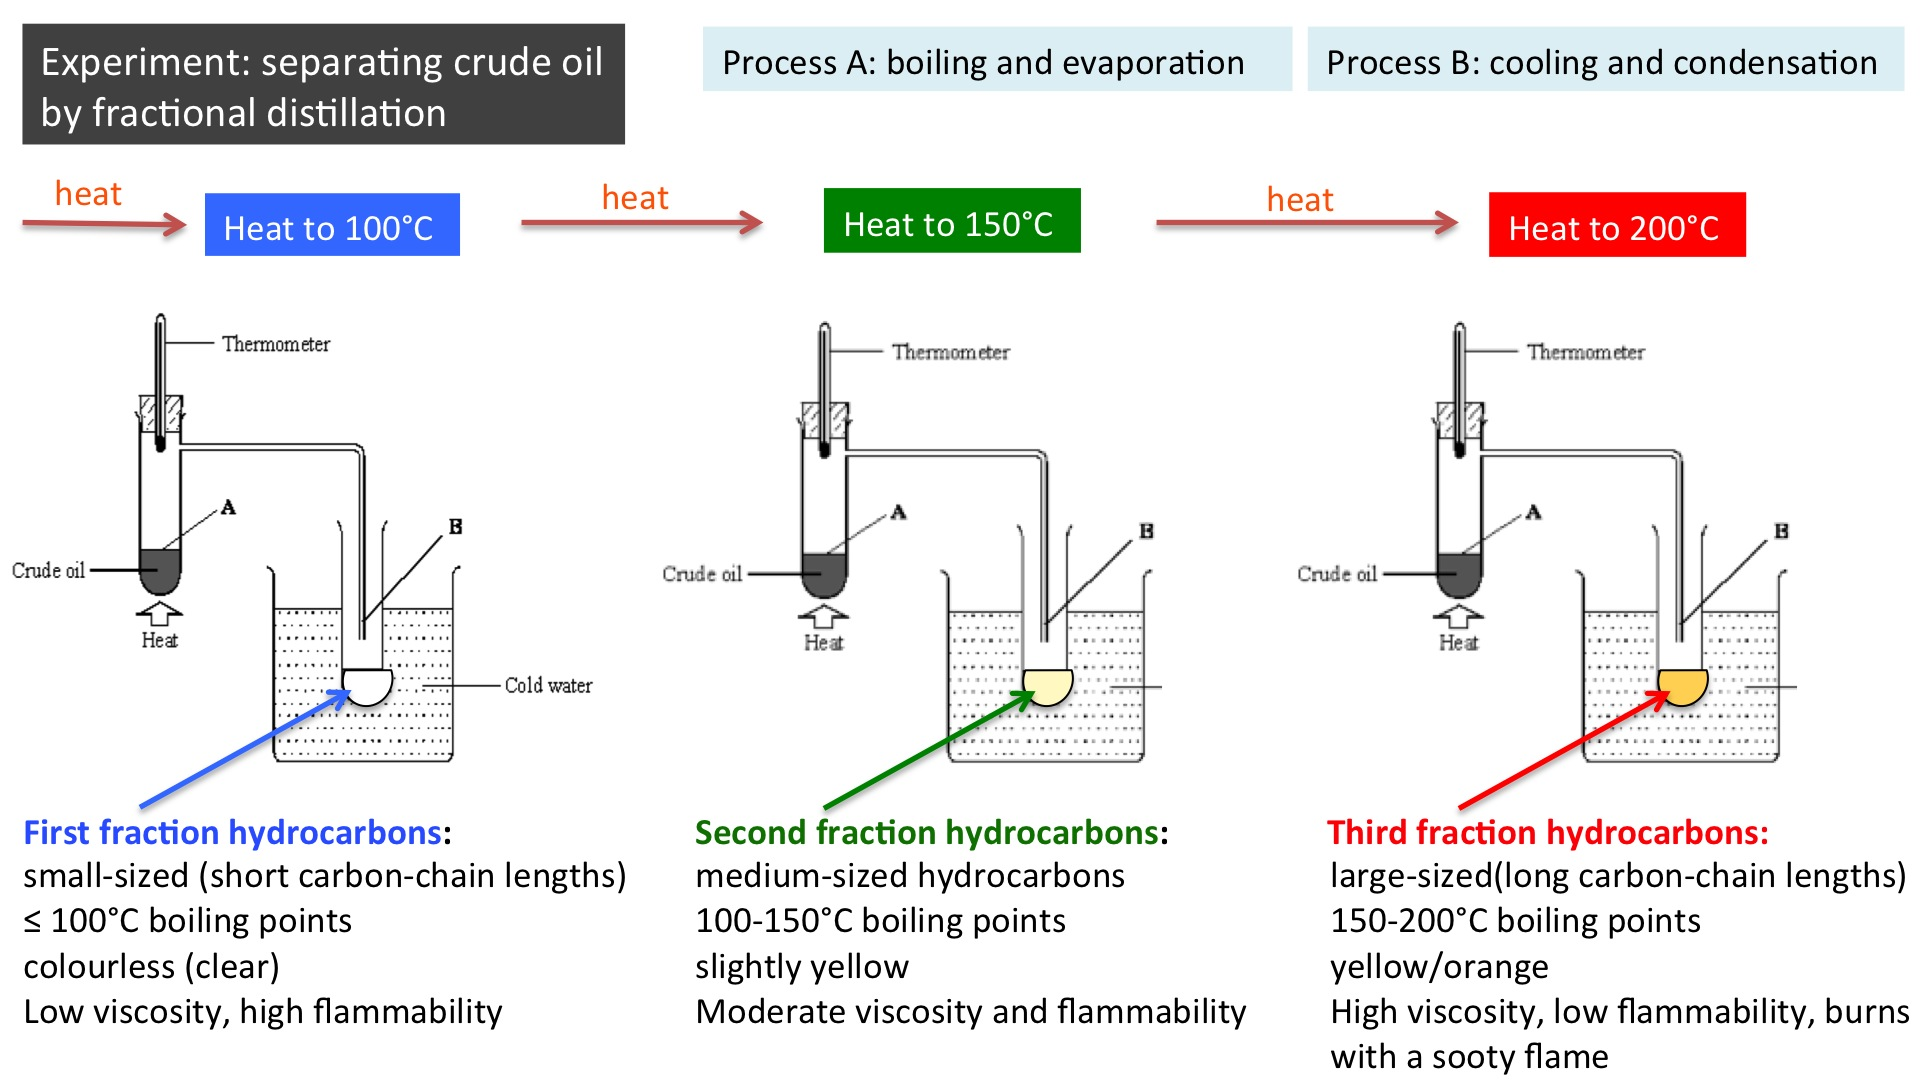 separation of petroleum hydrocarbons Fractionation of monoaromatic petroleum hydrocarbons 593 key factor in determining sorption of n-alkylxylenes into dealuminated mordenite shape selective separation of hydrocarbons can sometimes enable compounds to be separated which are difficult to separate using high efficiency gas chromatography techniques.